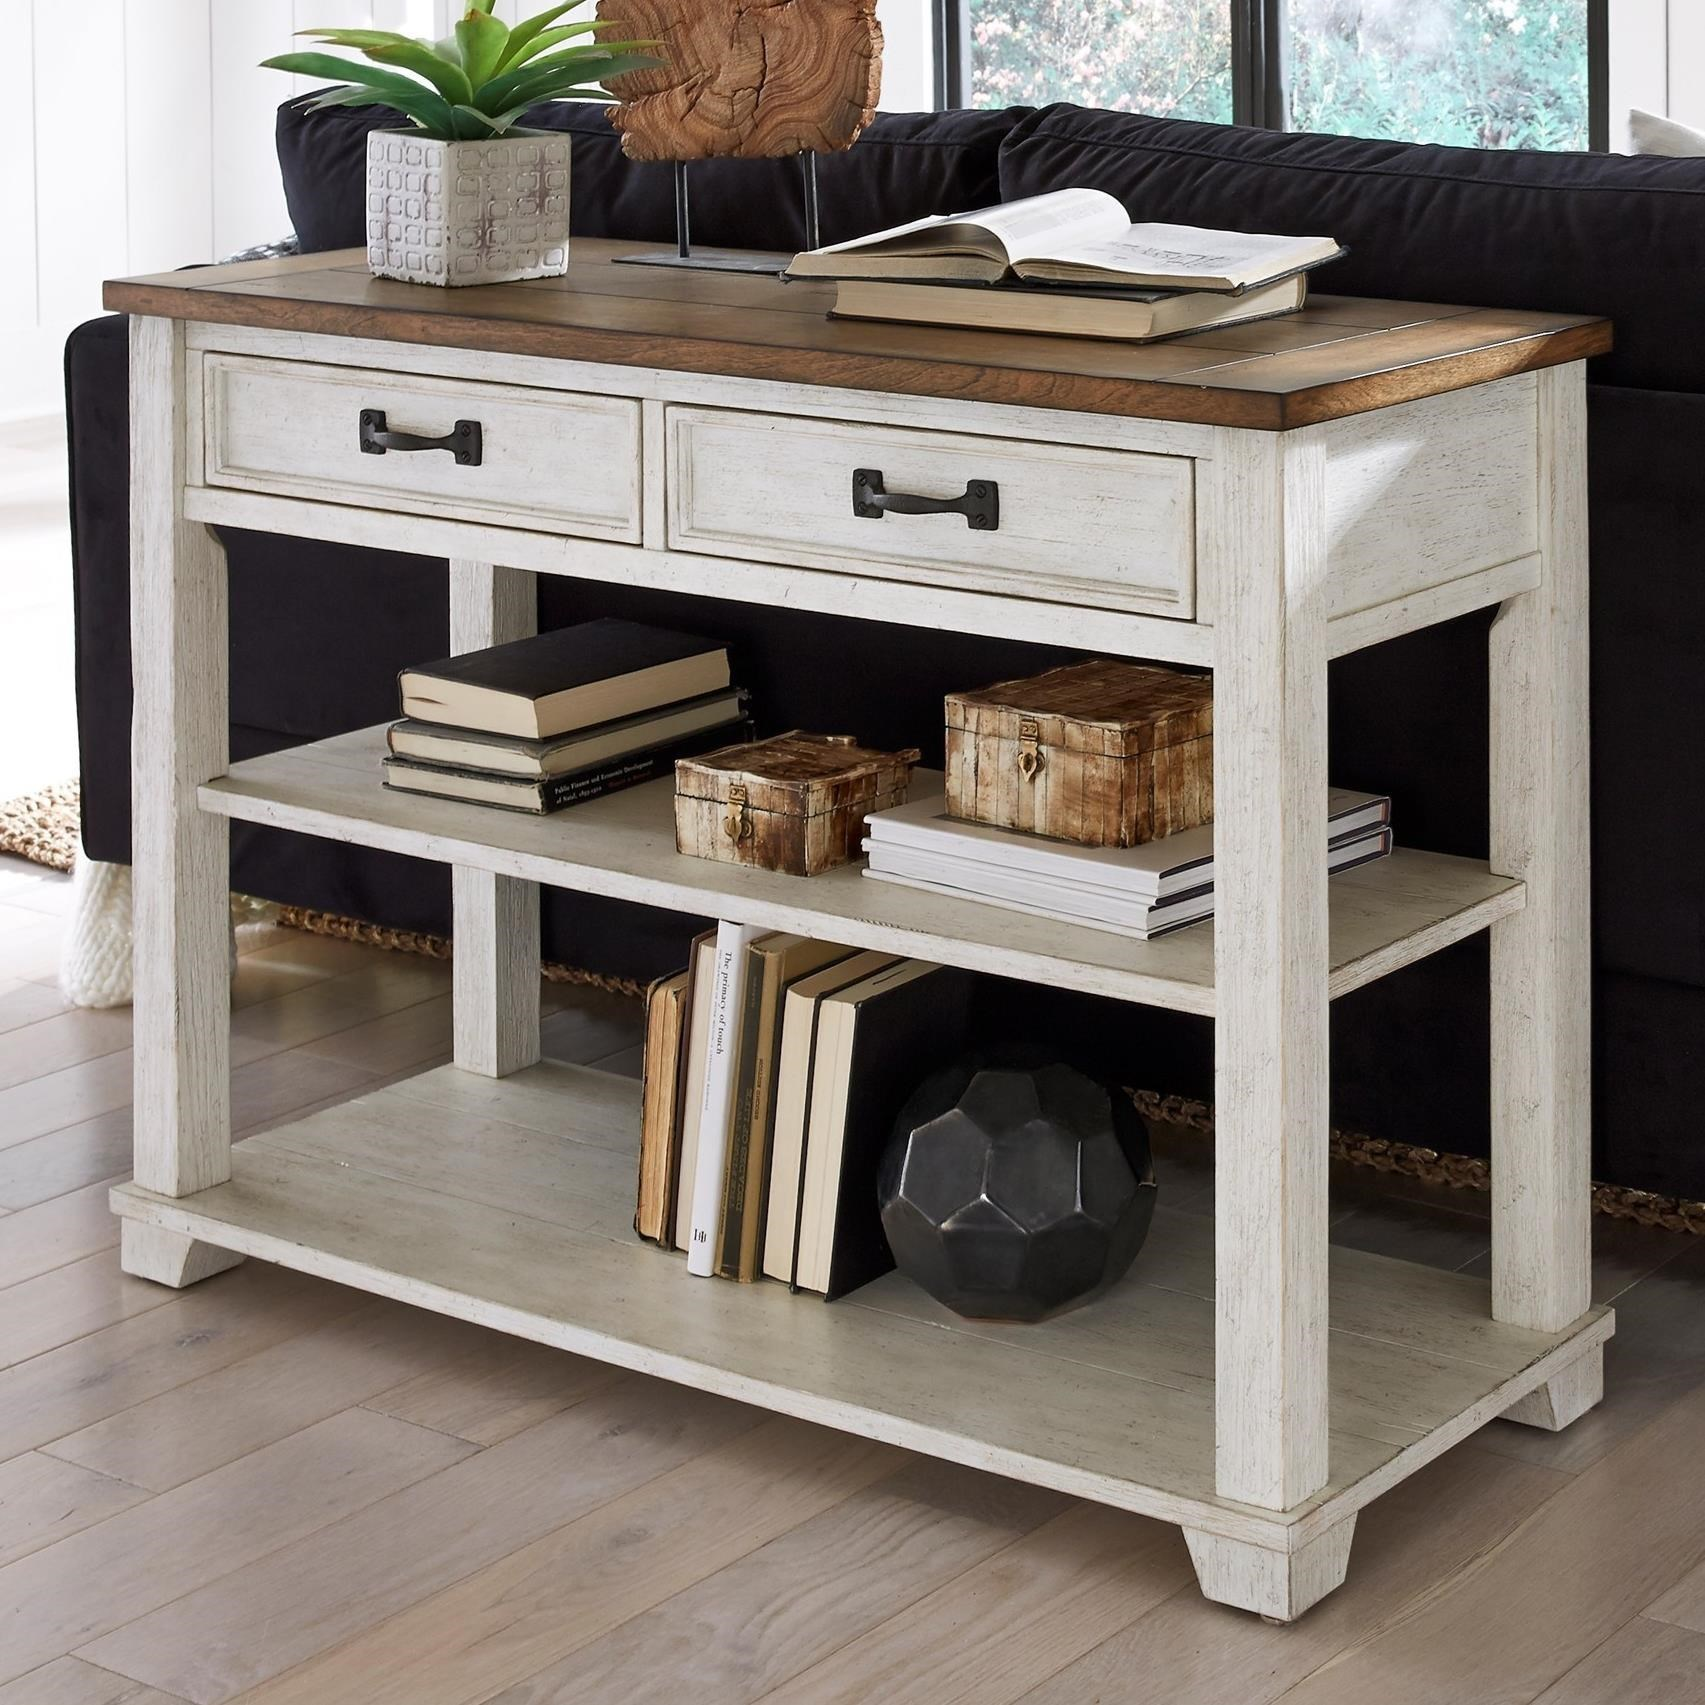 5519 Sofa/Media Console Table by Null Furniture at Dunk & Bright Furniture